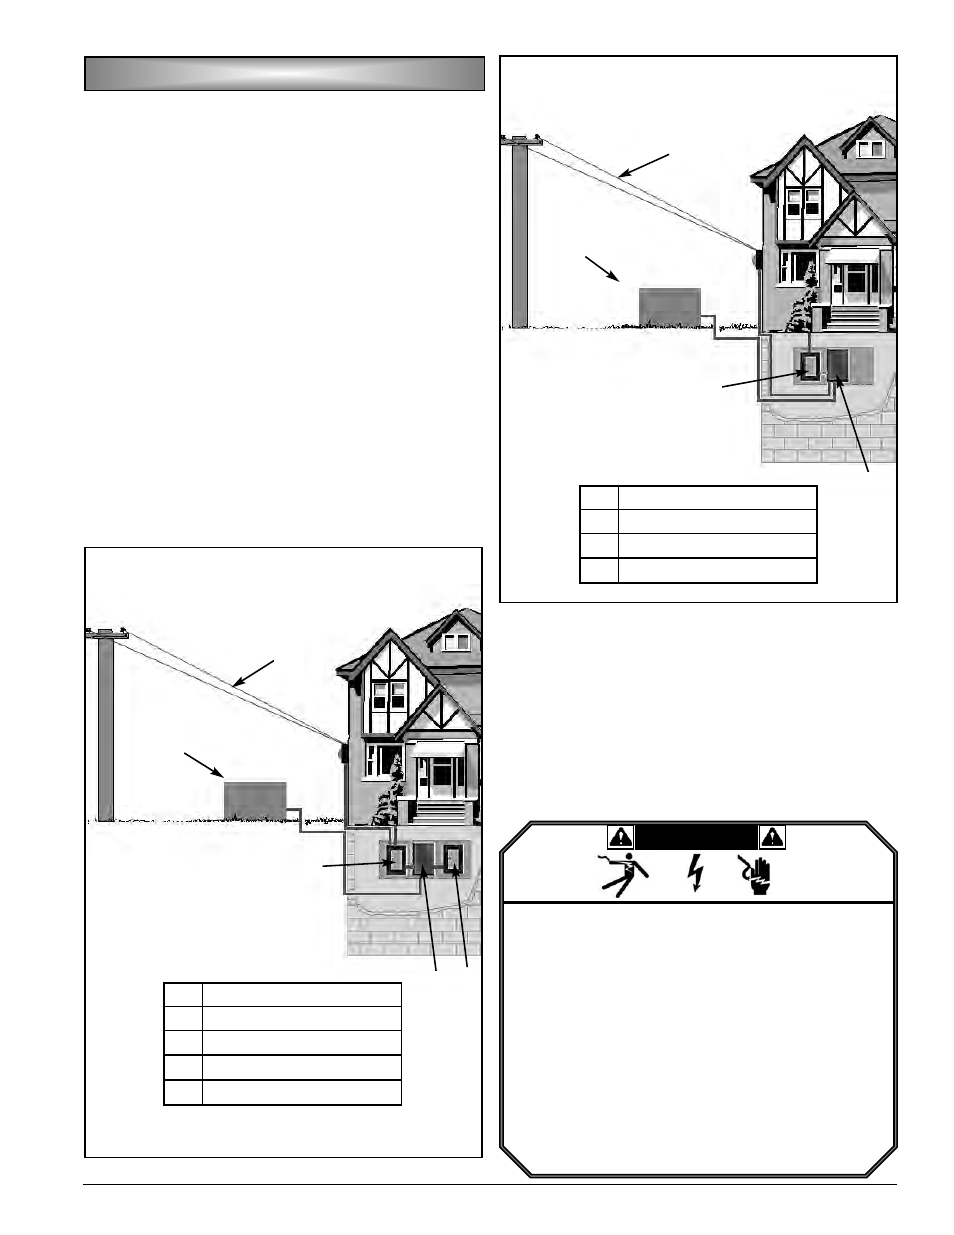 Powermate Pm400911 User Manual Page 7 48 200 Automatic Transfer Switch Wiring Diagram